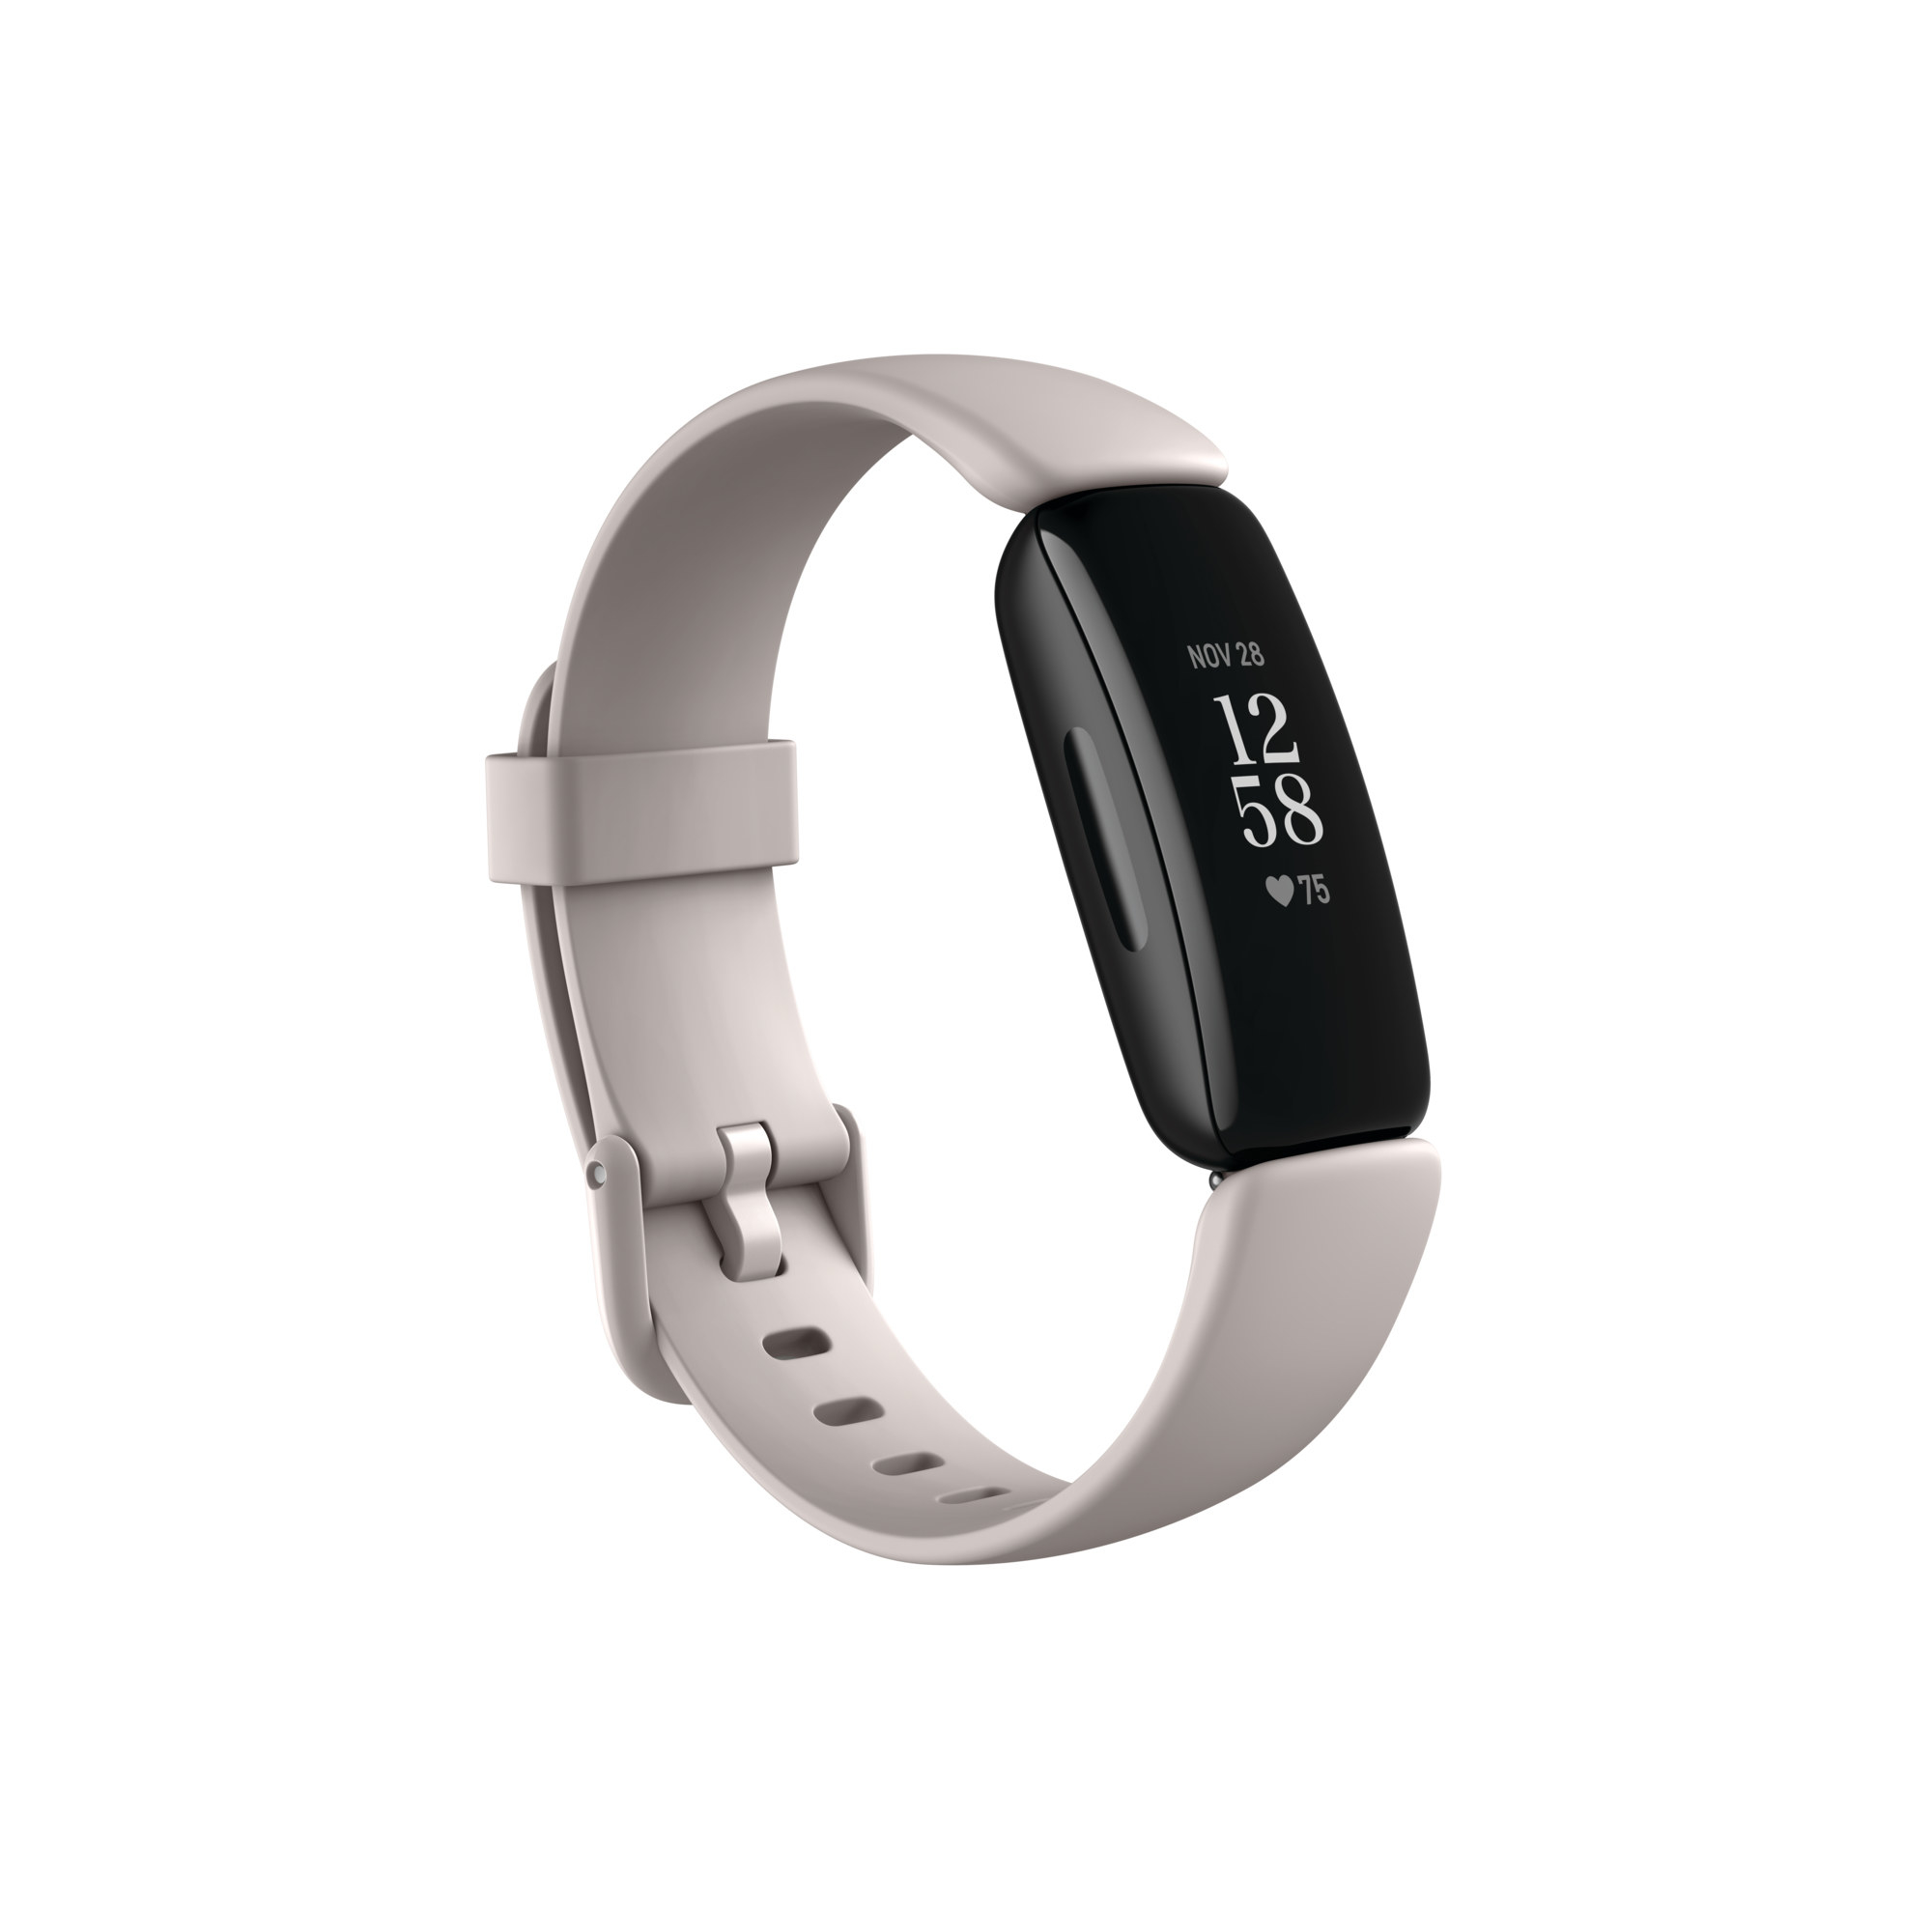 The white Fitbit with a black face